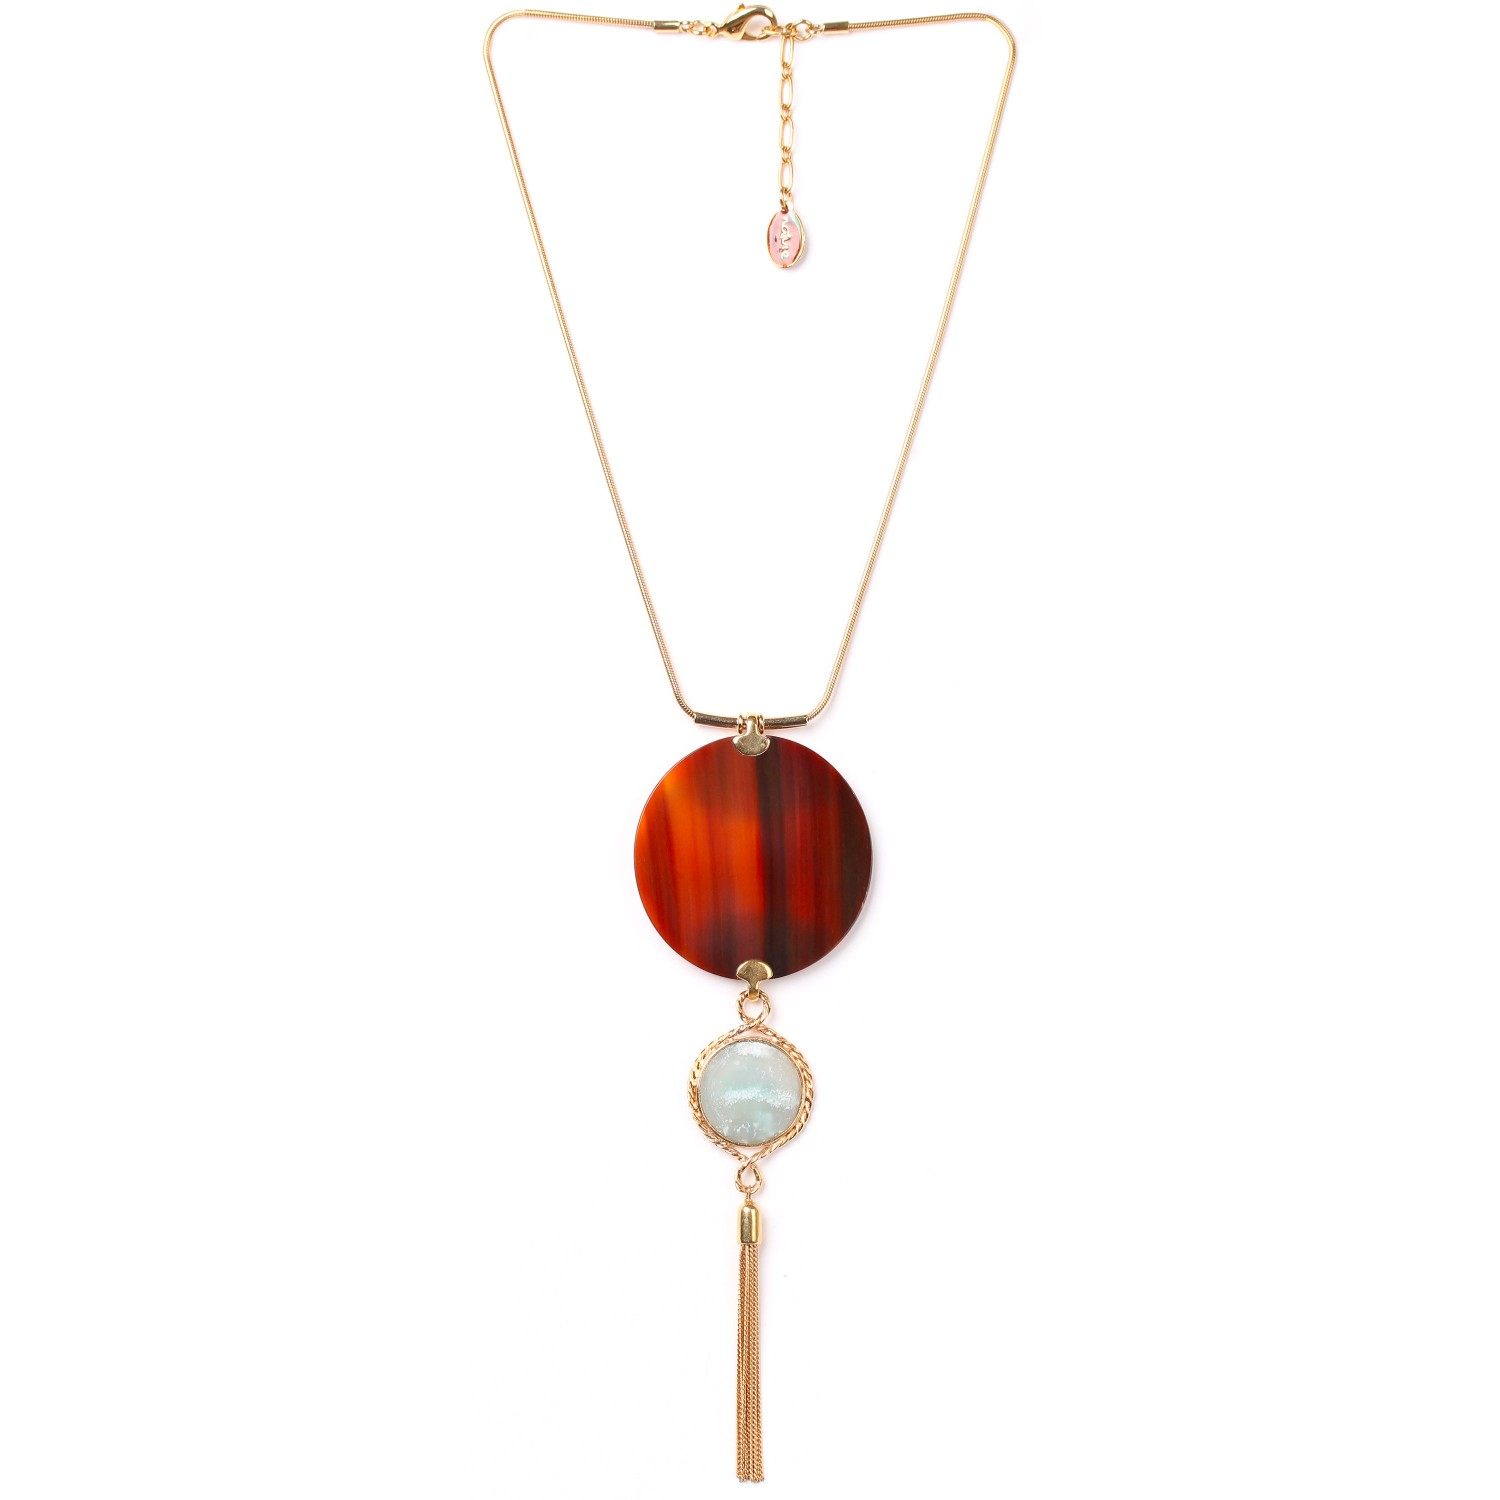 LA SCALA tassel necklace